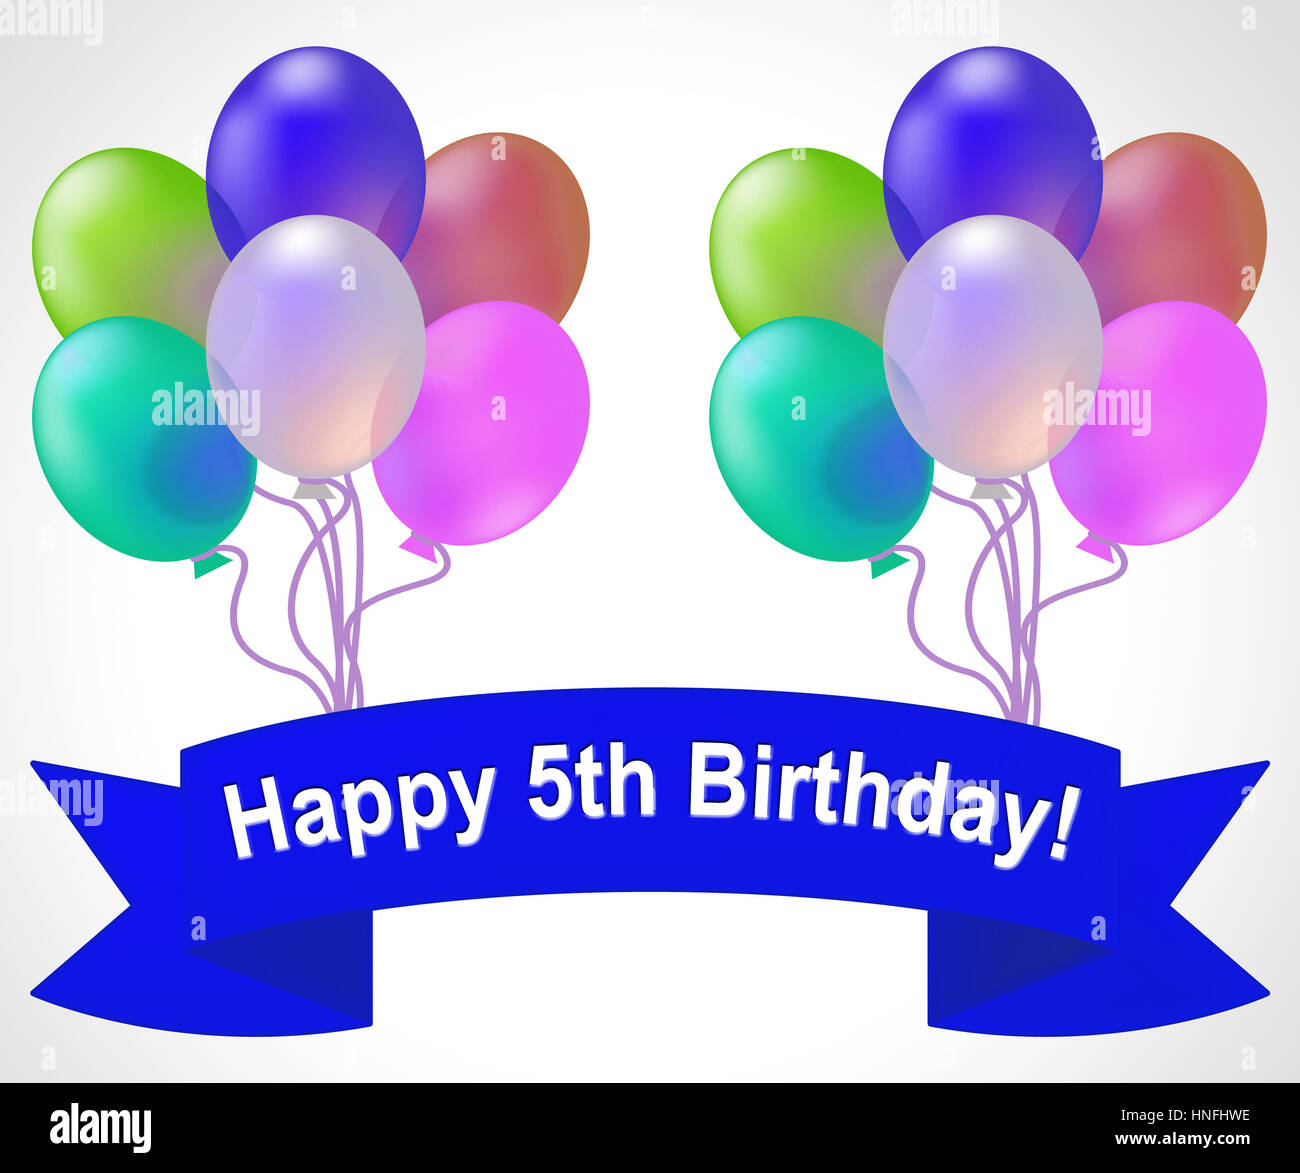 Happy Fifth Birthday Balloons Meaning 5th Party Celebration 3d Illustration